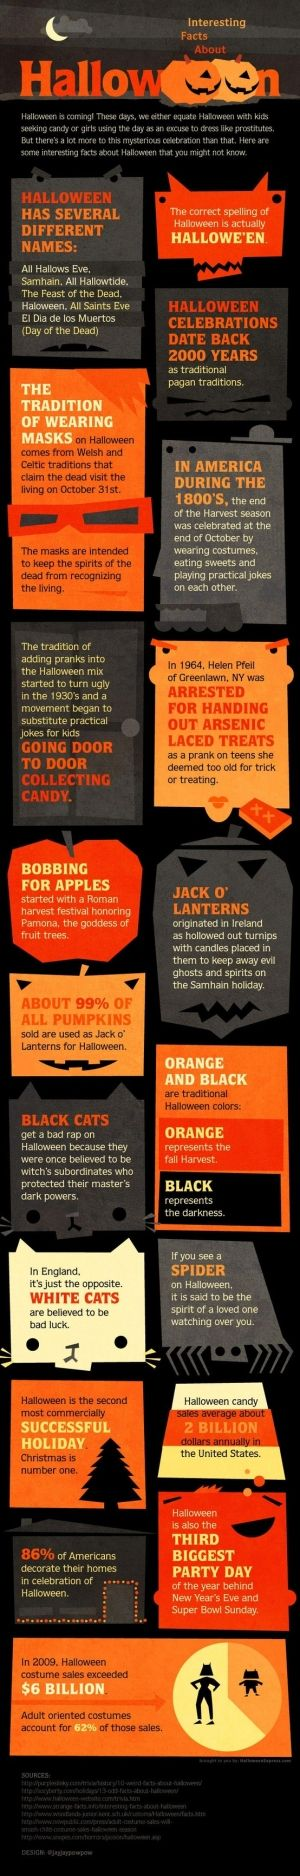 Halloween Trivia posters (picture only to copy from--link appears broke?)